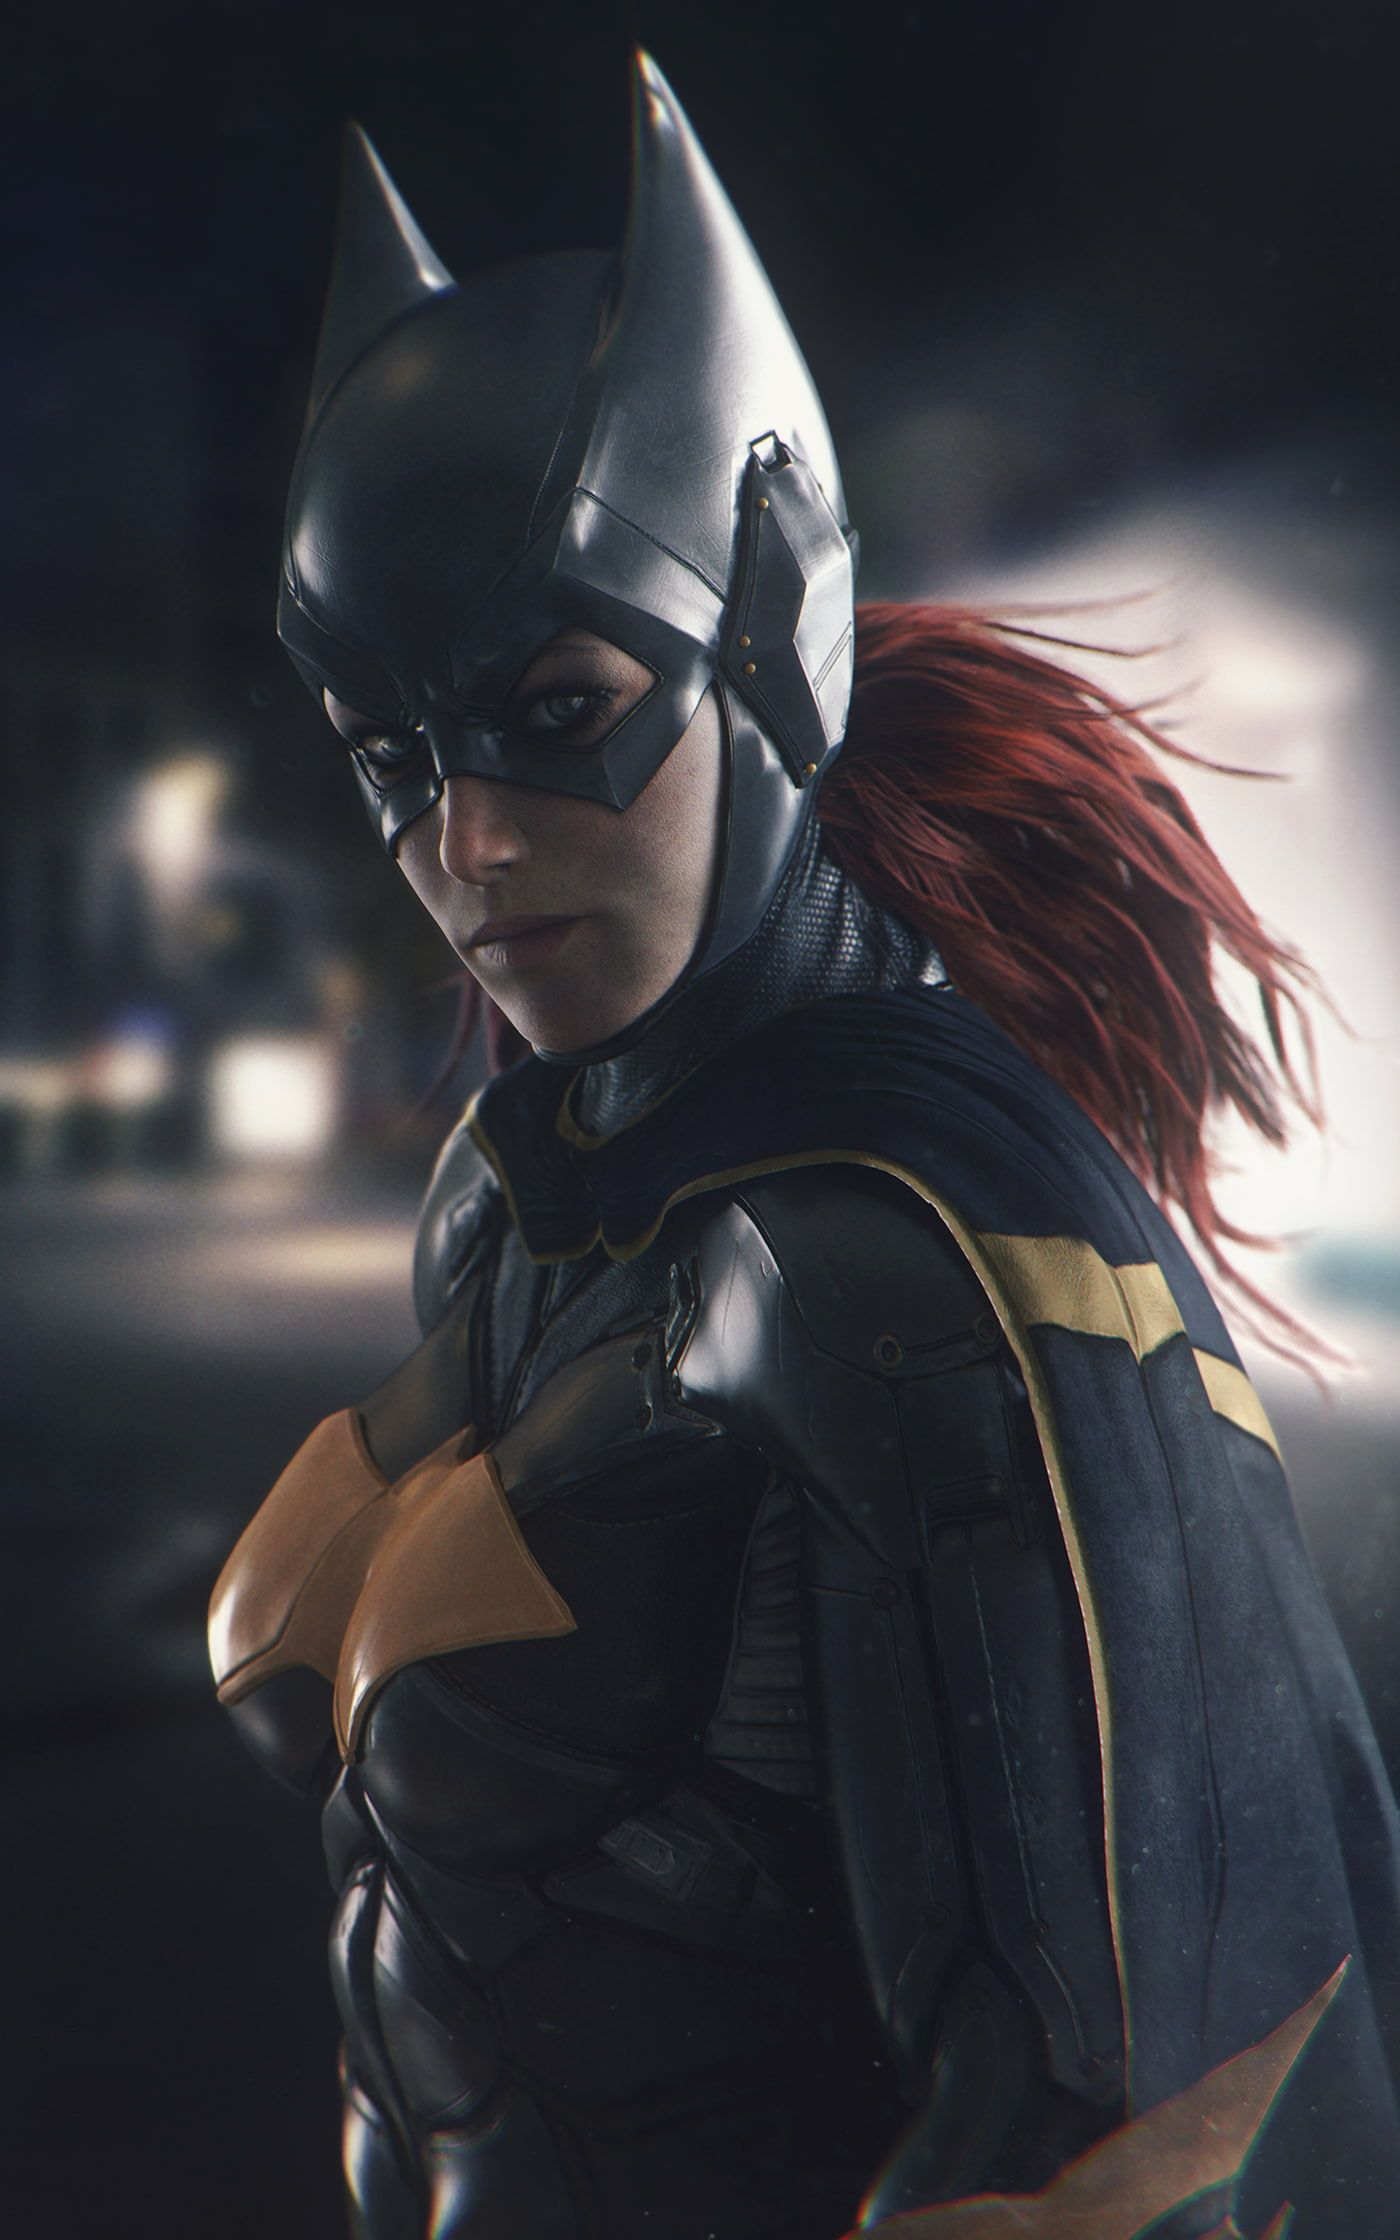 Batgirl Dc Comics Artwork Portrait Display Batman Batman Arkham Knight 1080p Wallpaper Hdwallpape Batman Arkham Knight Wallpaper Batman Comic Art Batman